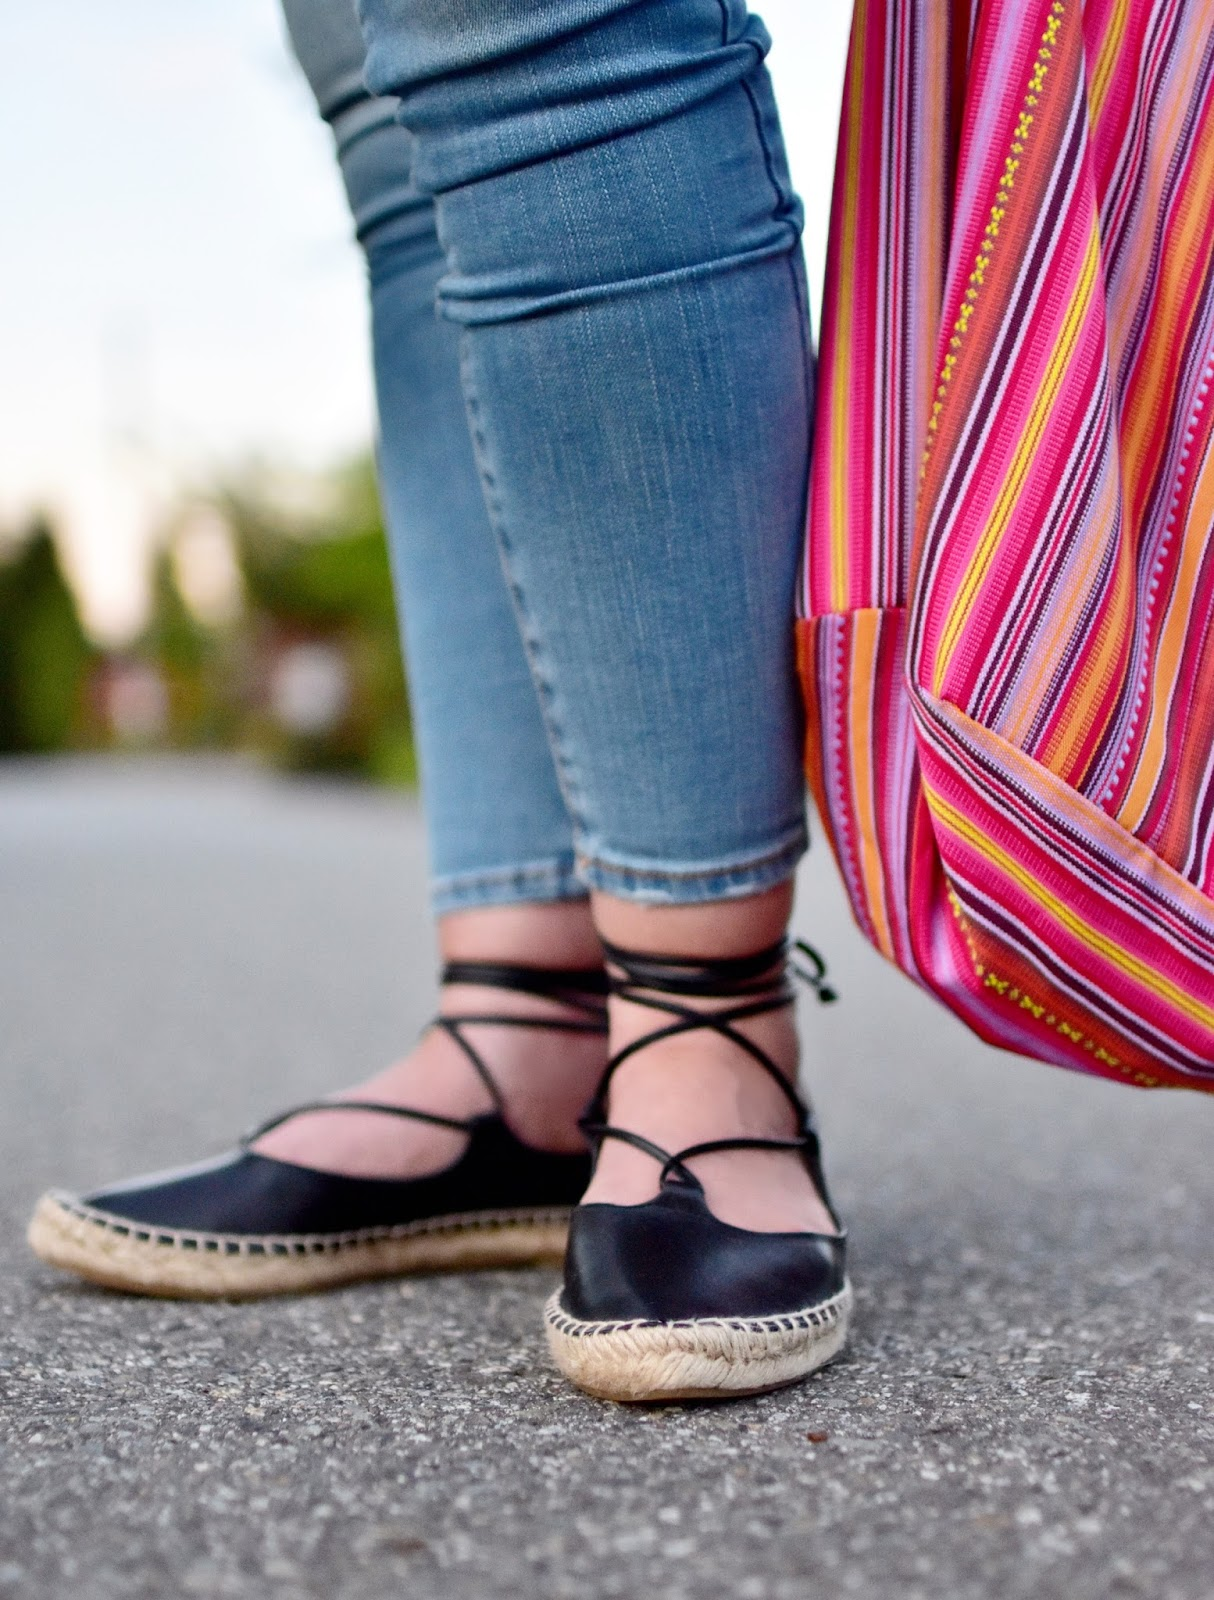 skinny jeans, Zara espadrilles, striped hobo bag